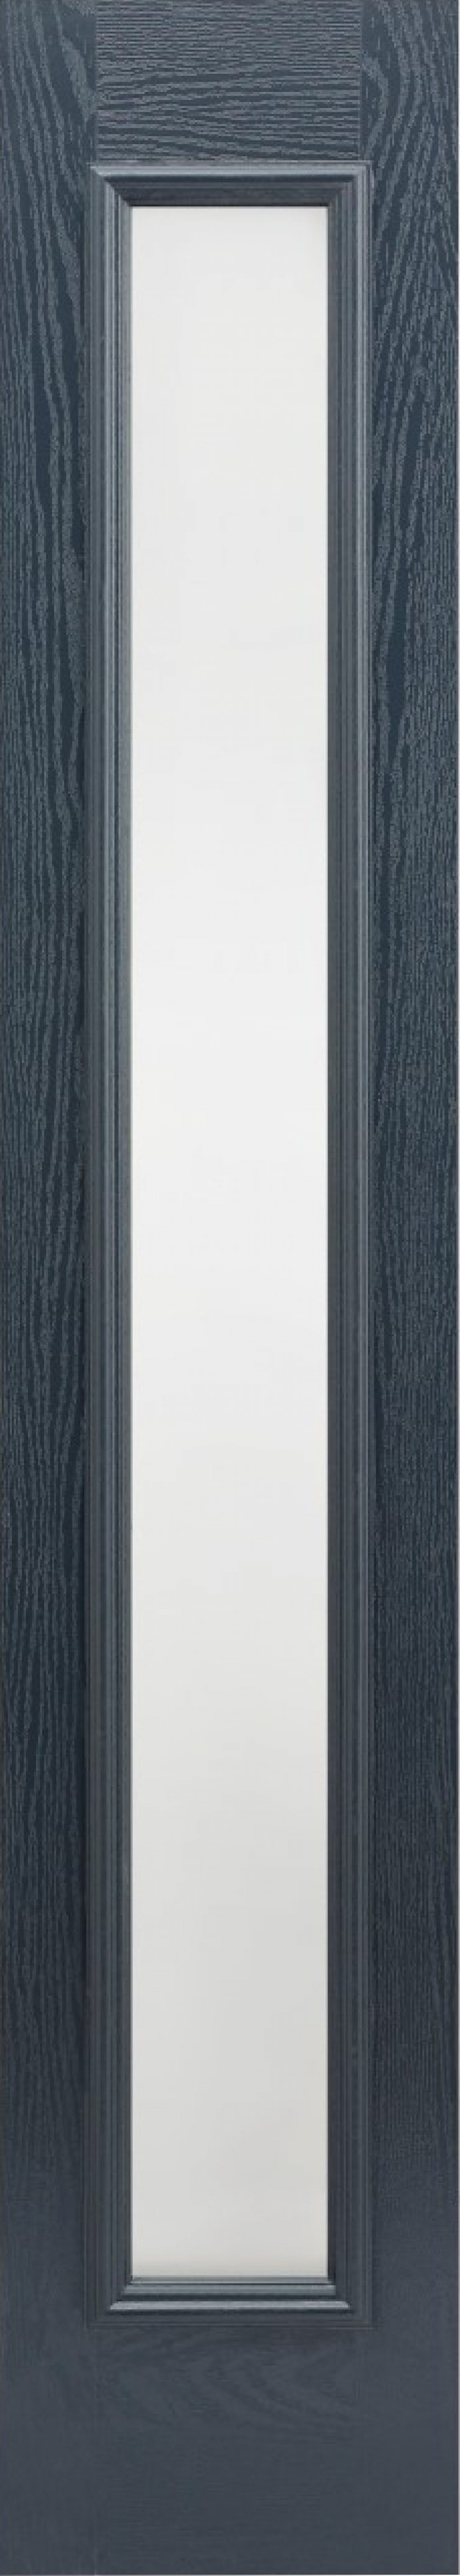 Black Frosted Glazed Composite Sidelight